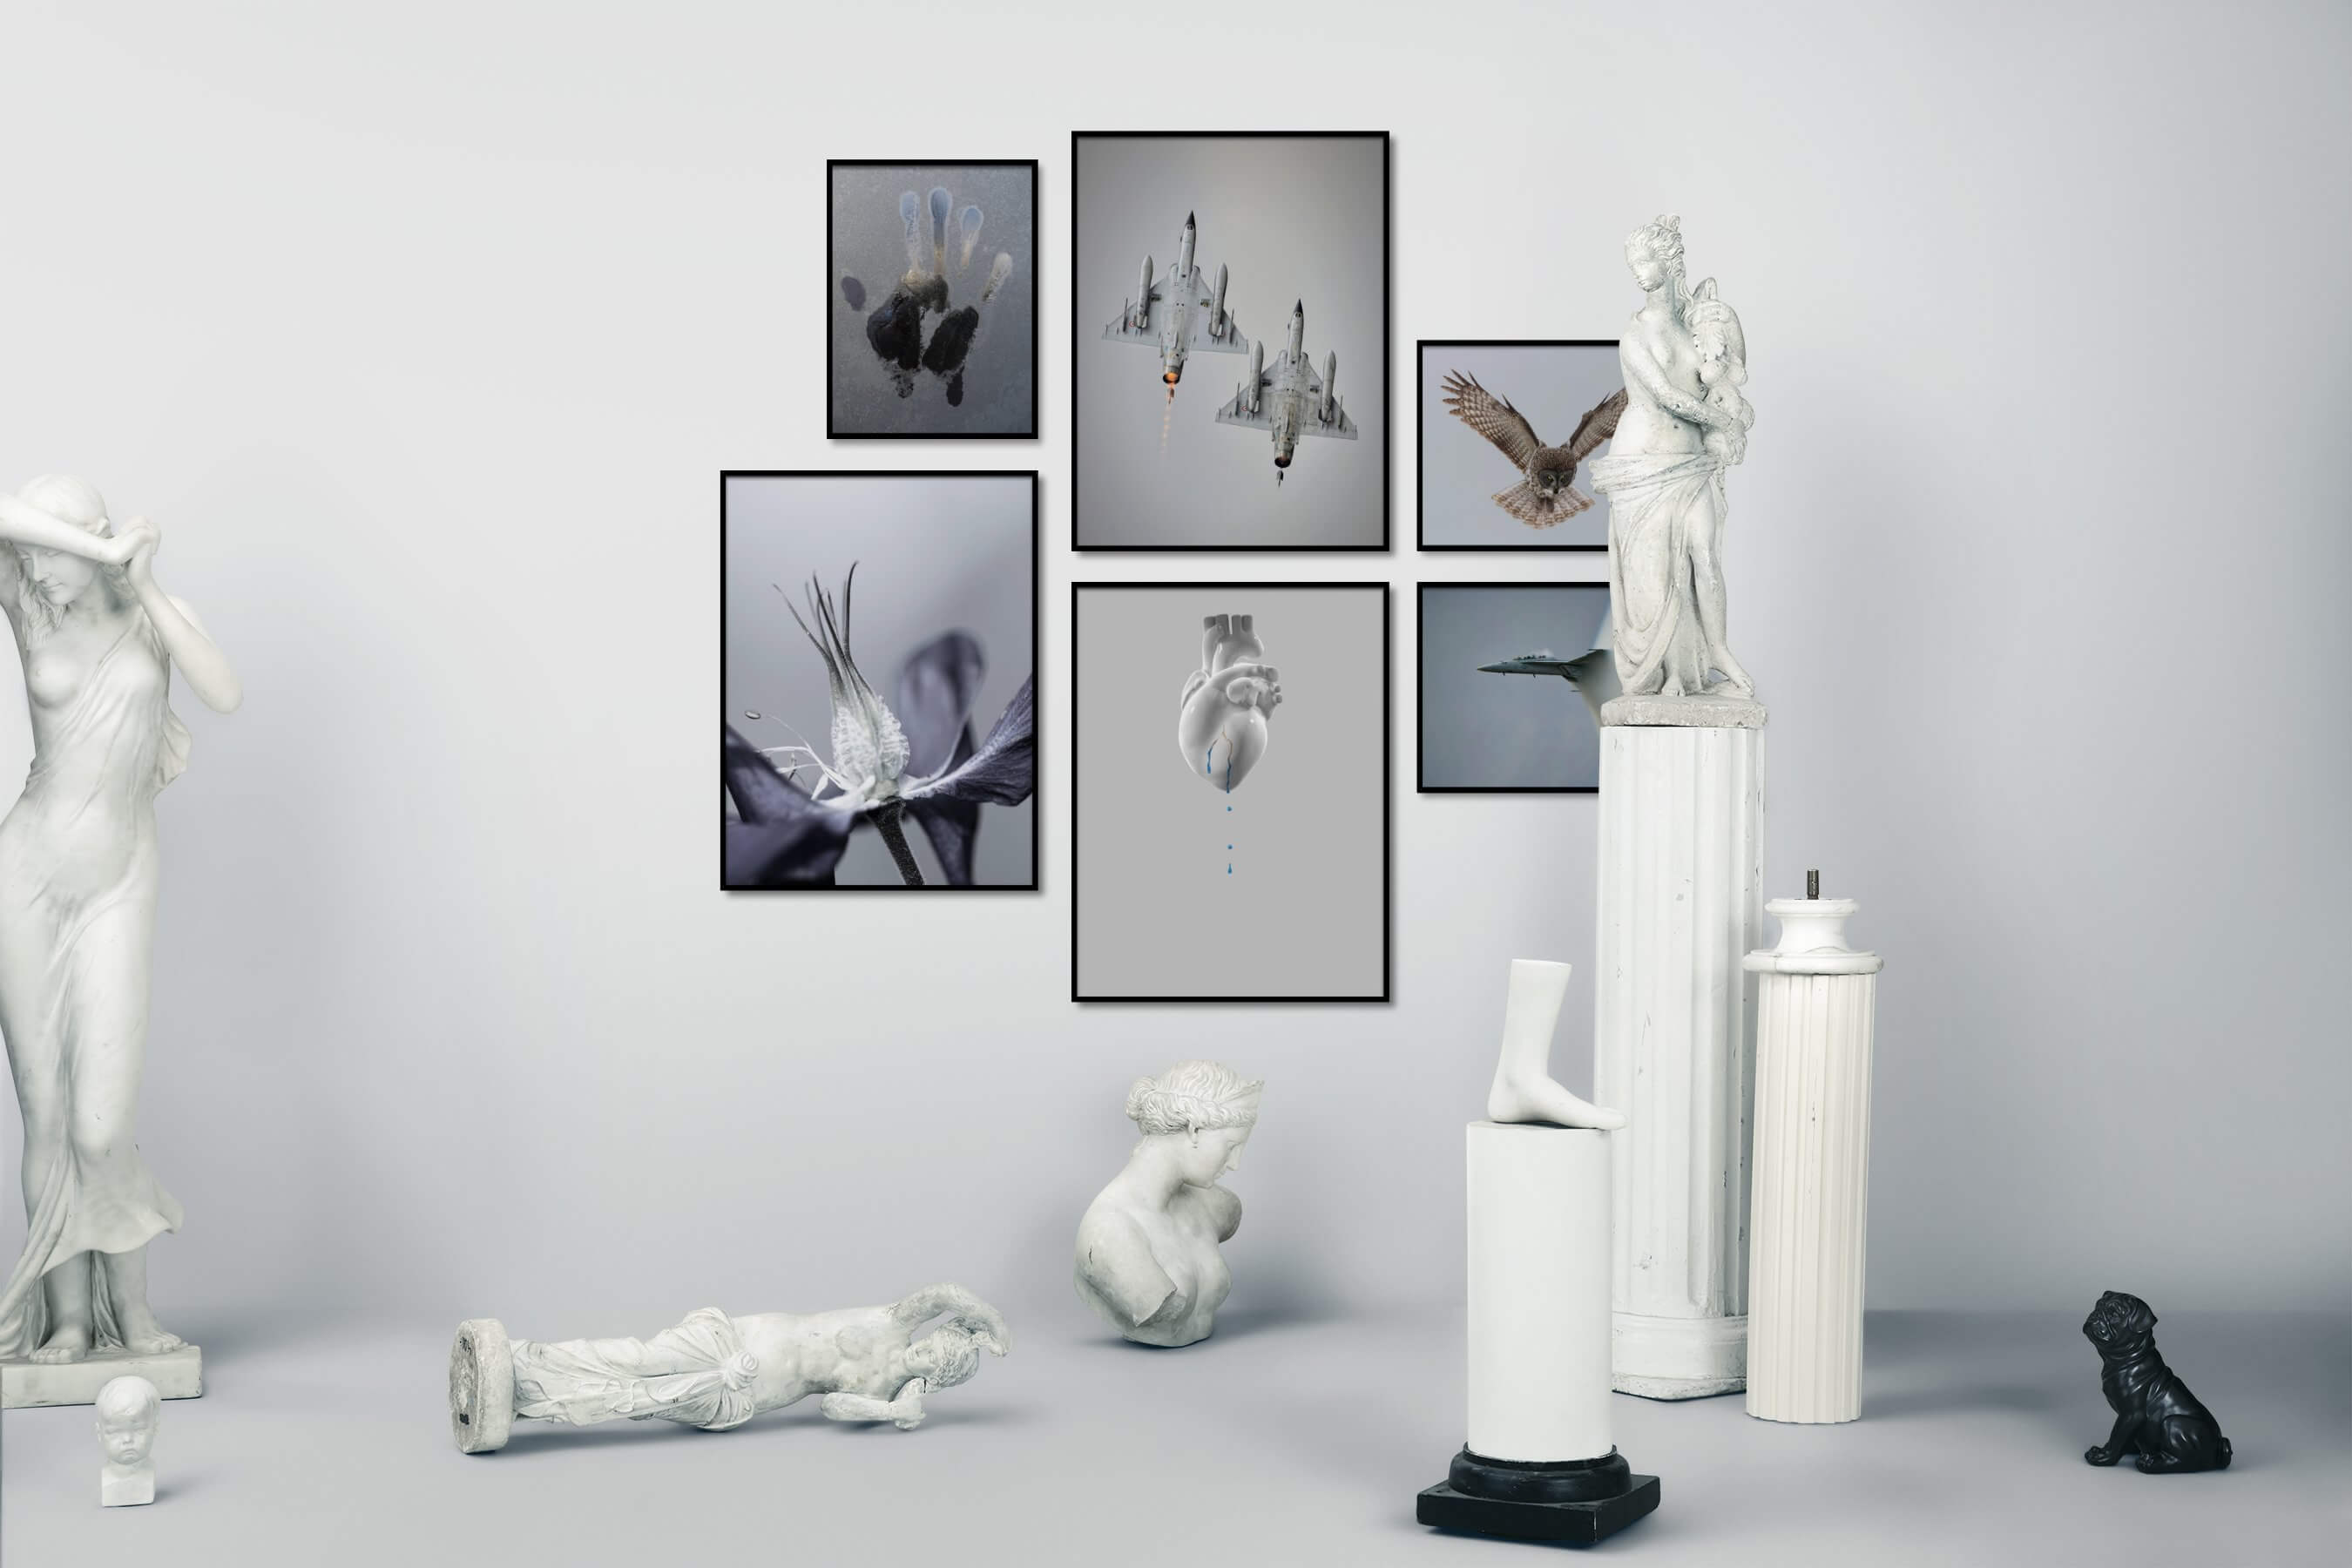 Gallery wall idea with six framed pictures arranged on a wall depicting For the Minimalist, Flowers & Plants, Artsy, and Animals